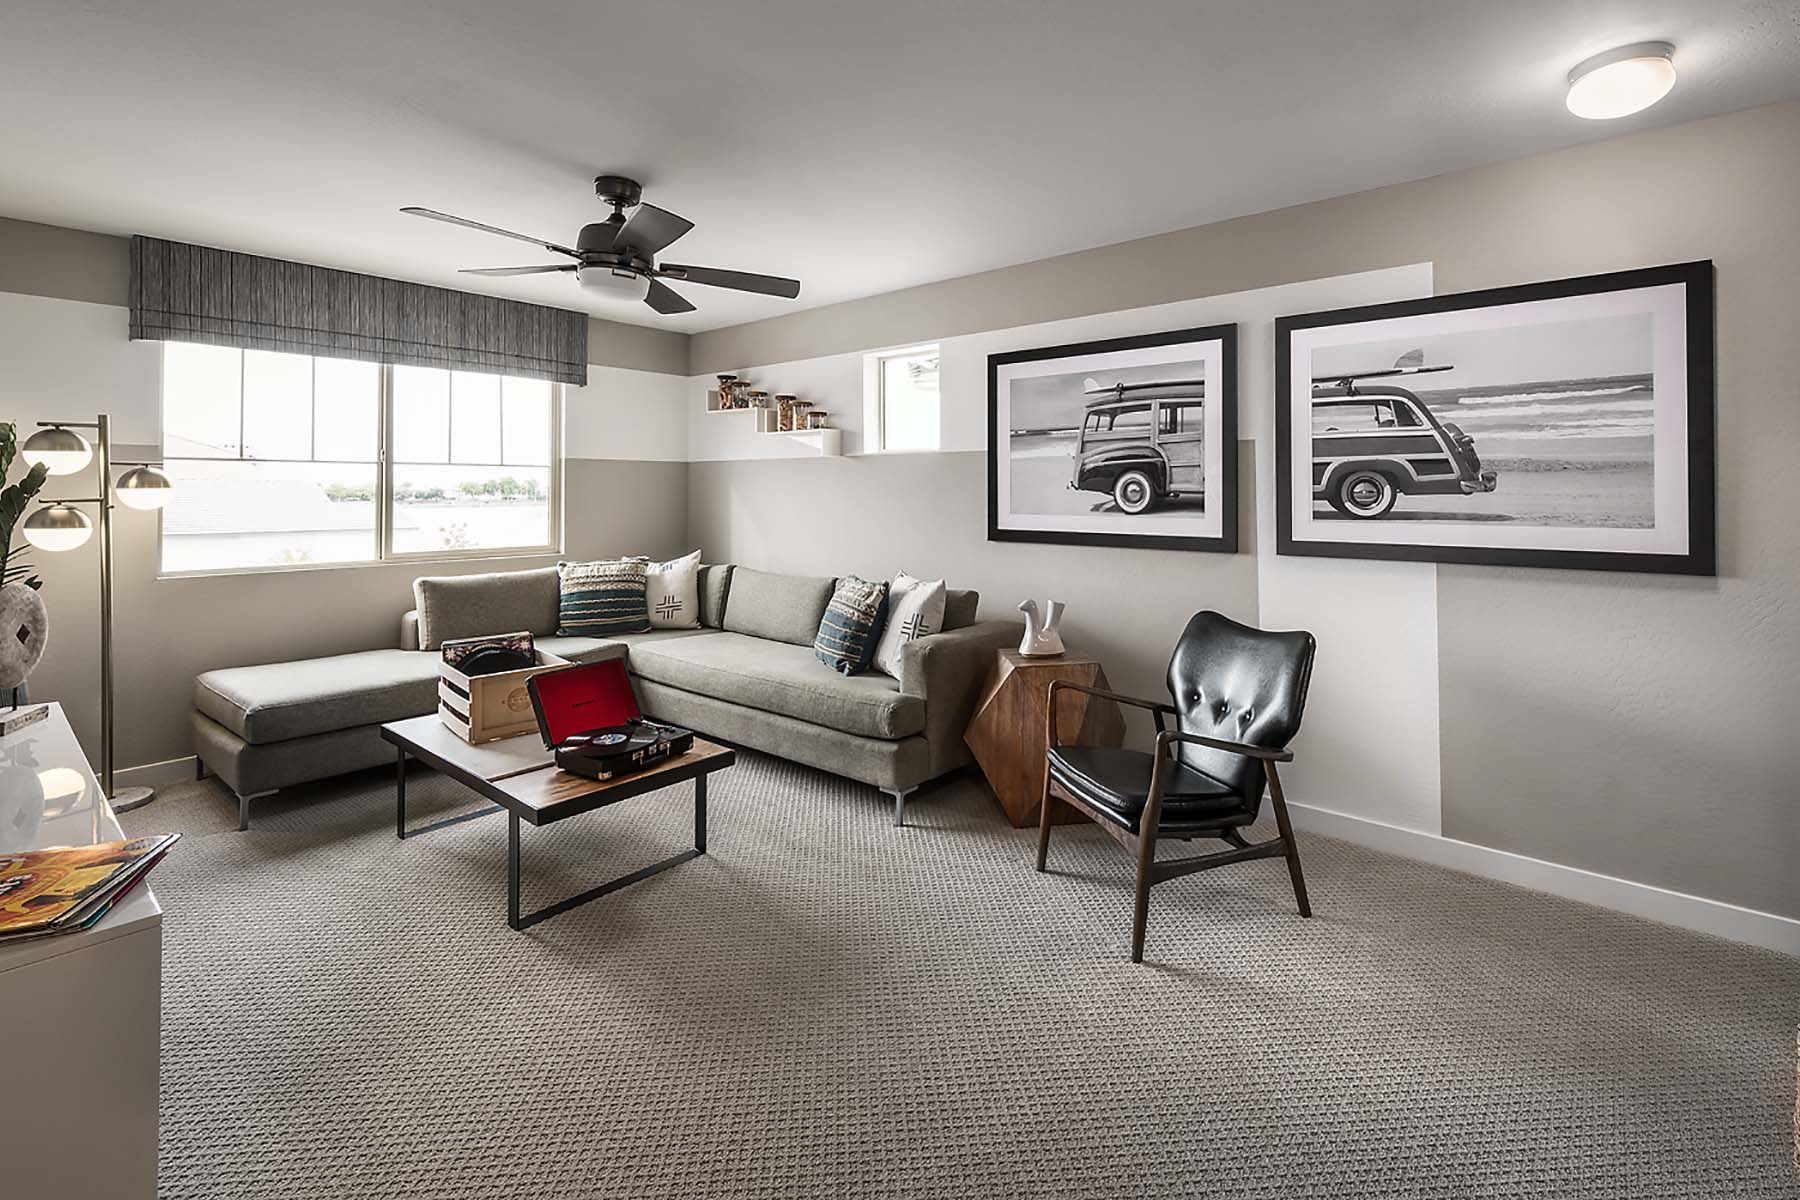 Whatley Plan  at Roosevelt Park in Avondale Arizona by Mattamy Homes